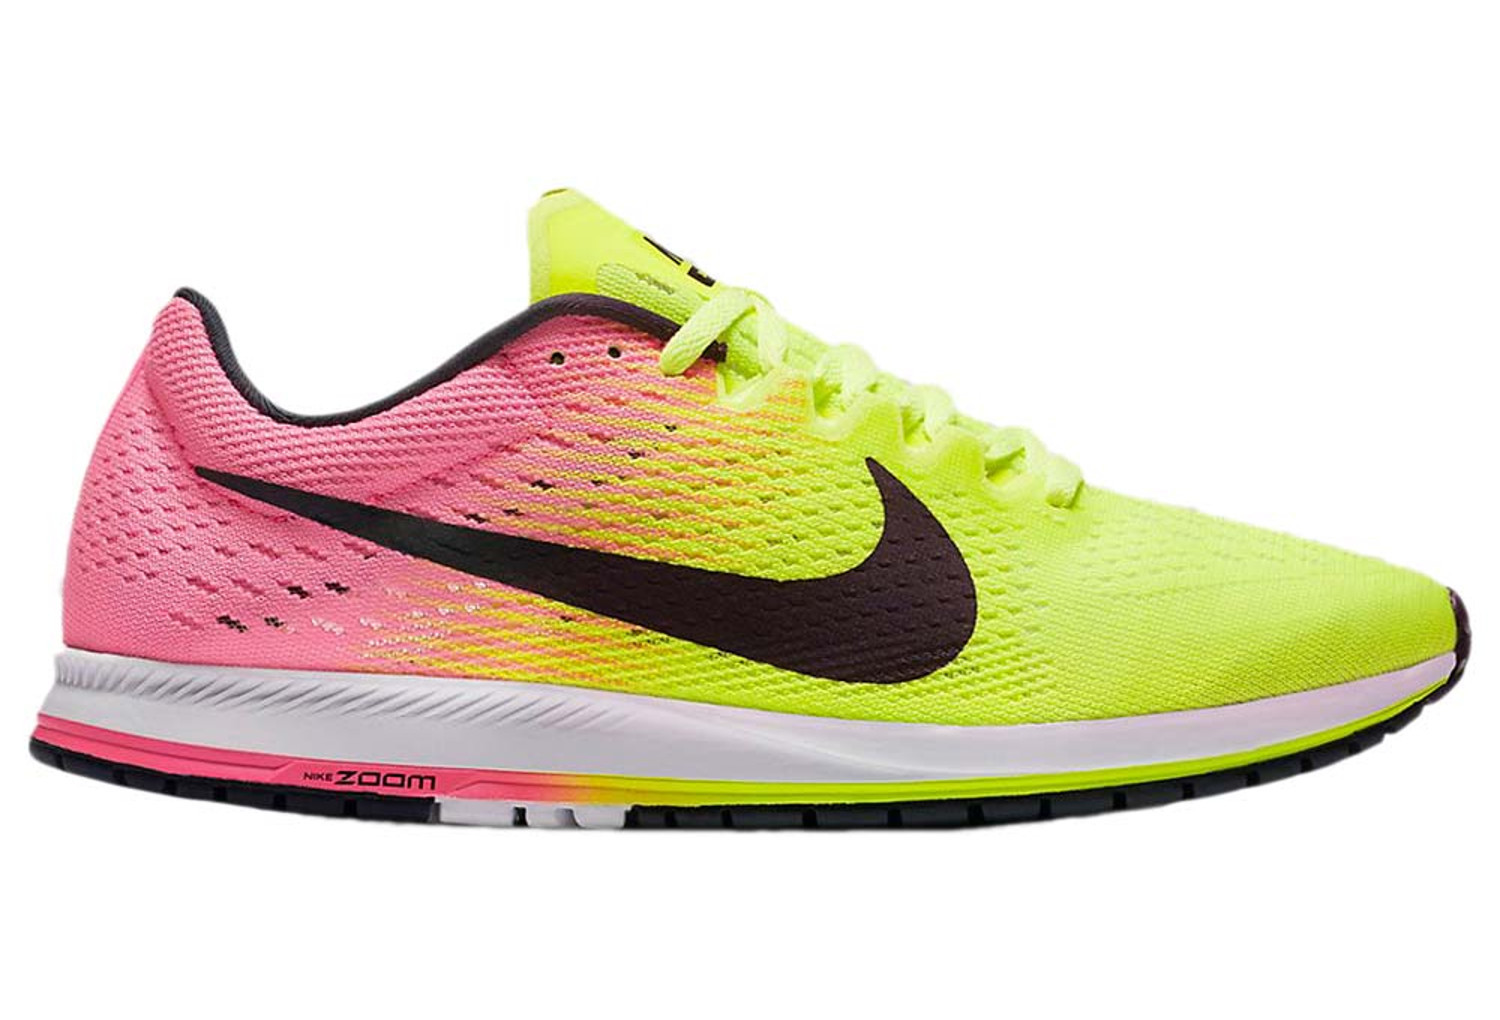 buy popular afe2d 8e06b NIKE ZOOM STREAK 6 OC Pink Yellow Unisex